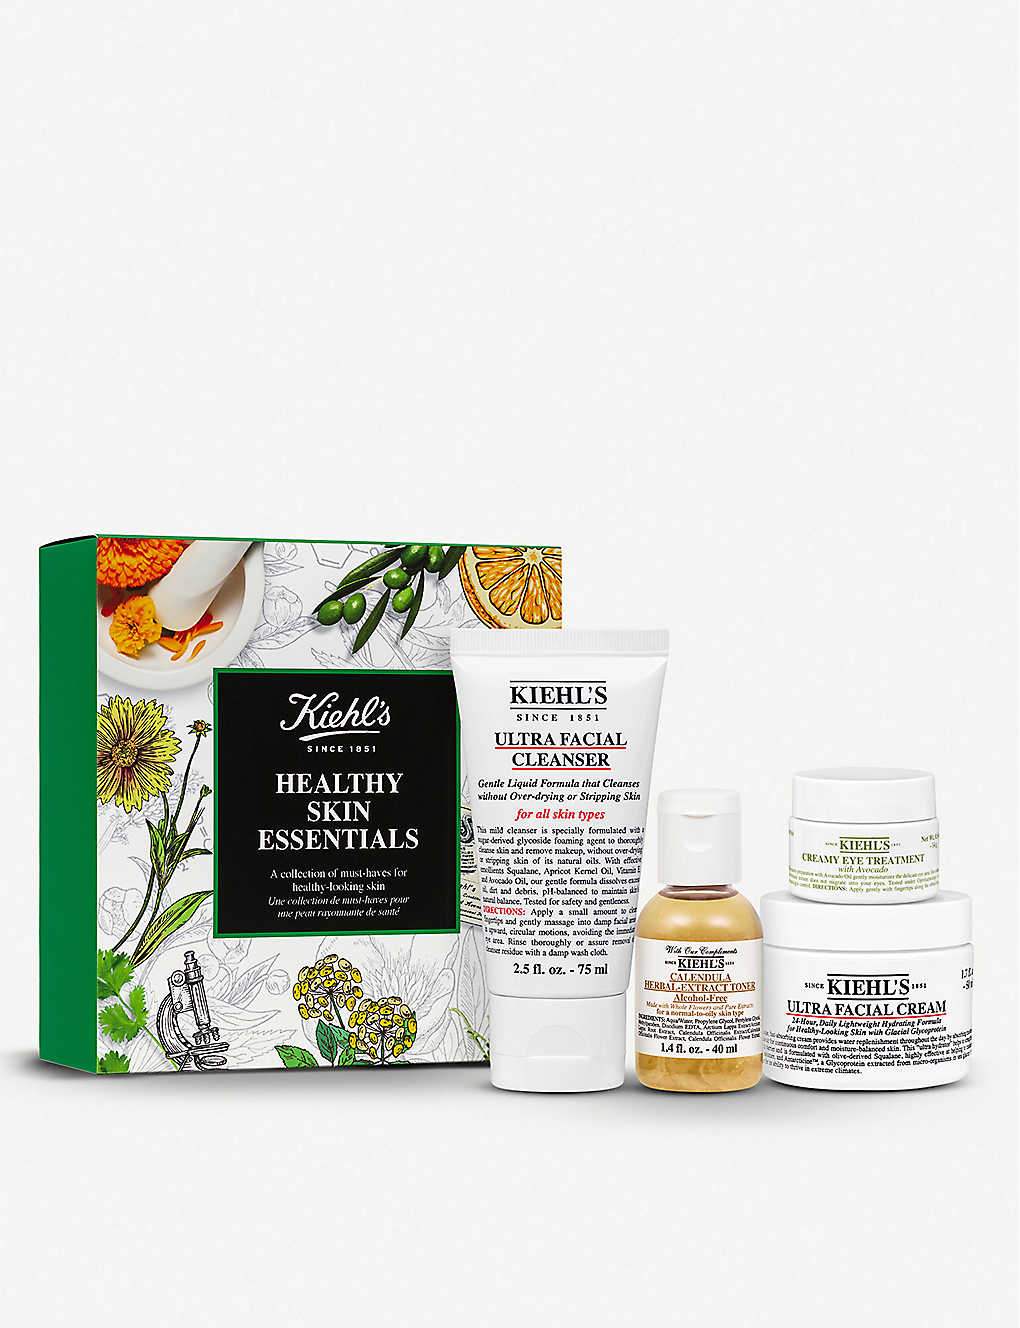 KIEHL'S: Healthy Skin Essentials gift set